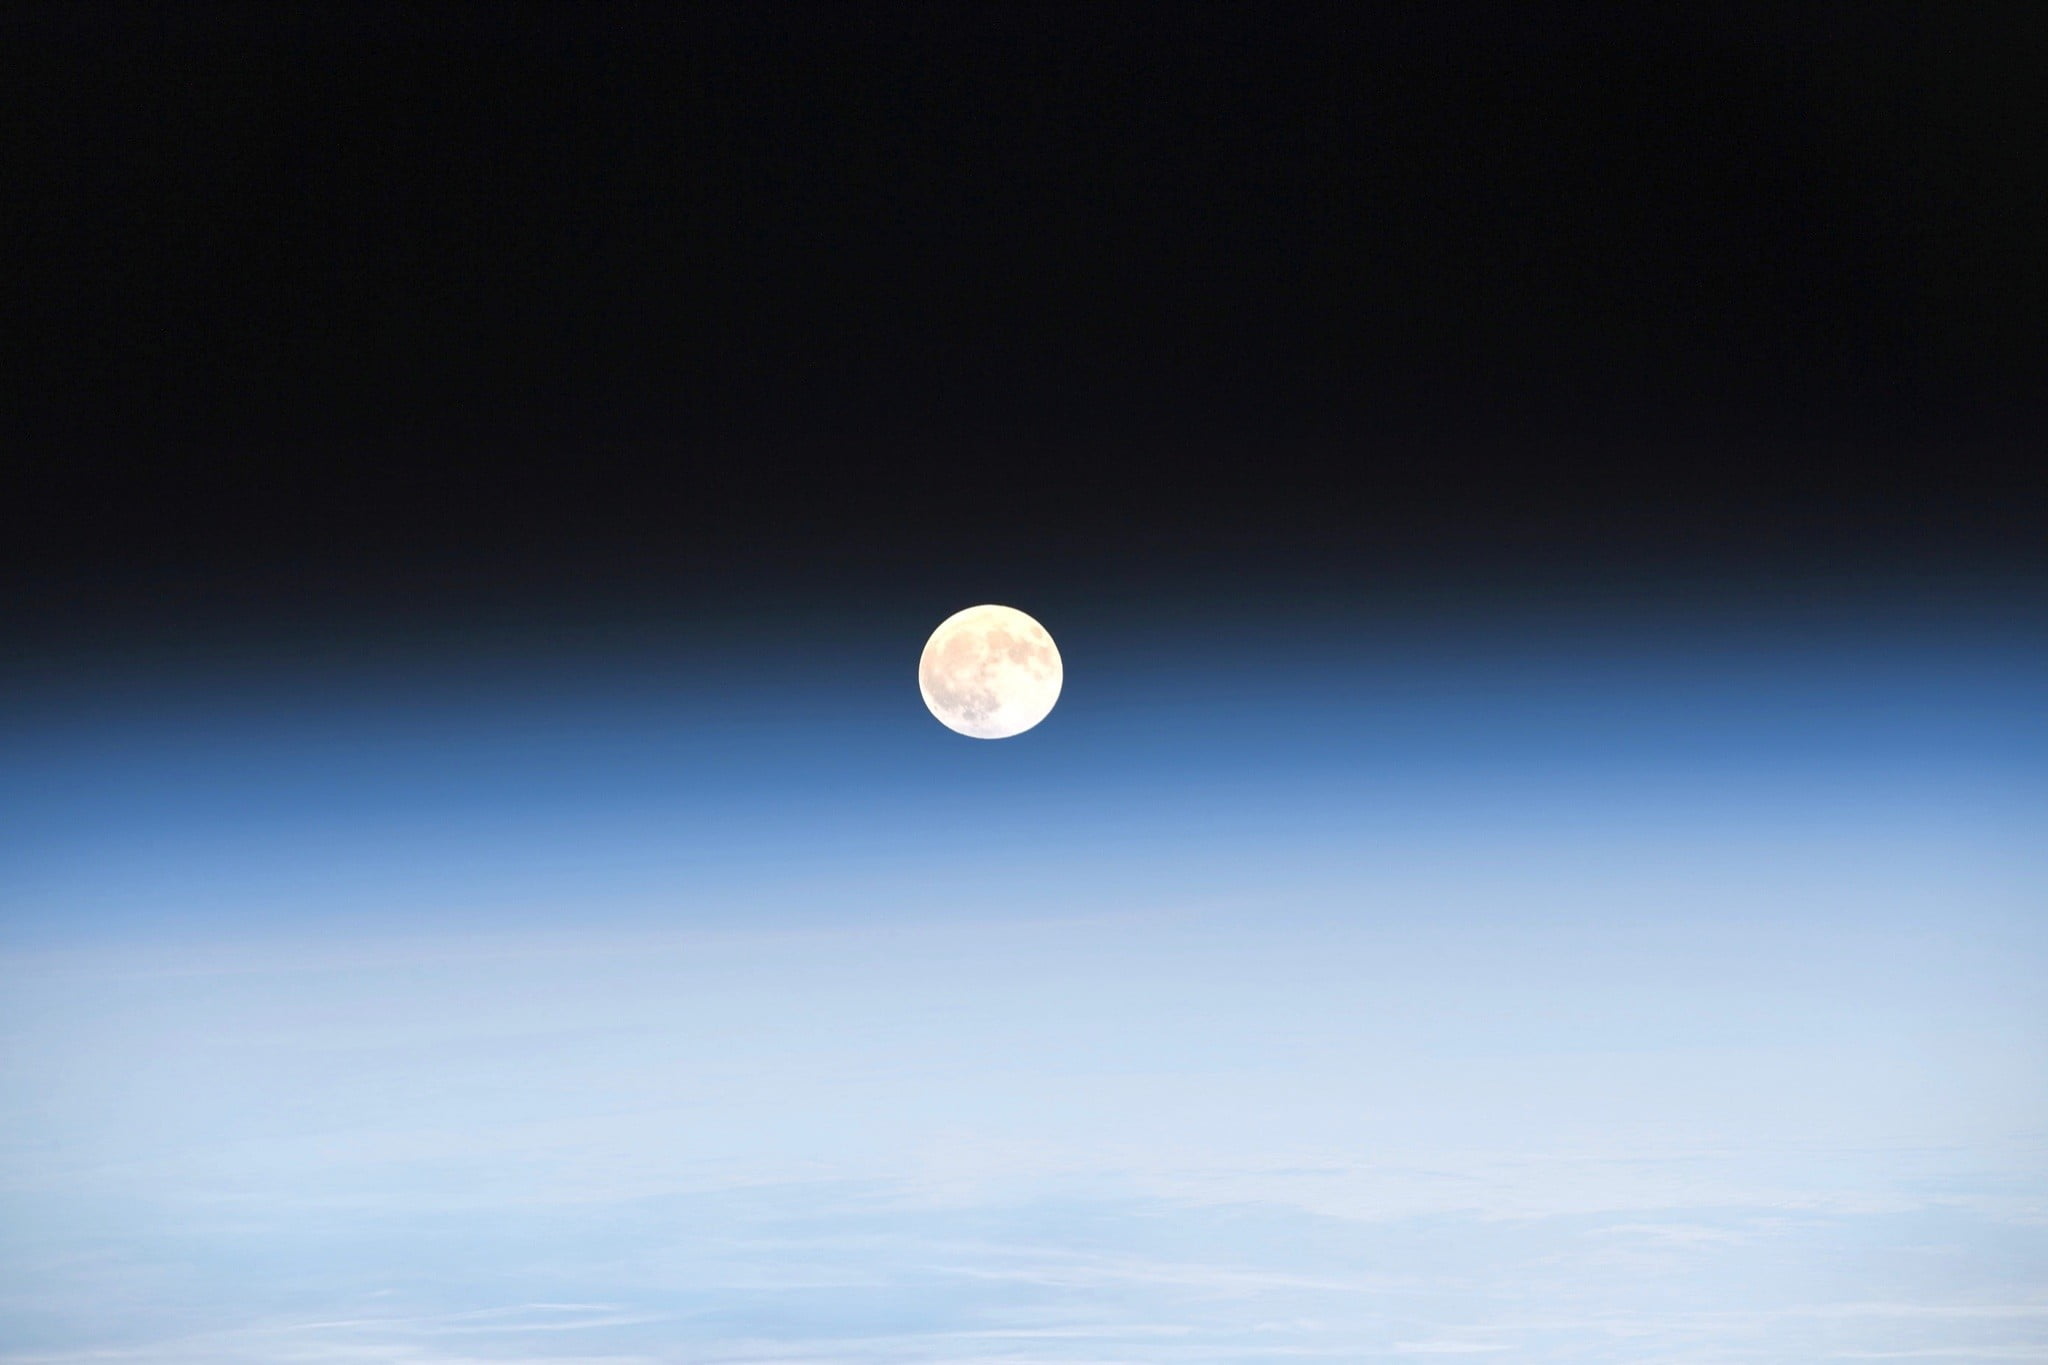 astronaut captures stunning moonrise from space station 5